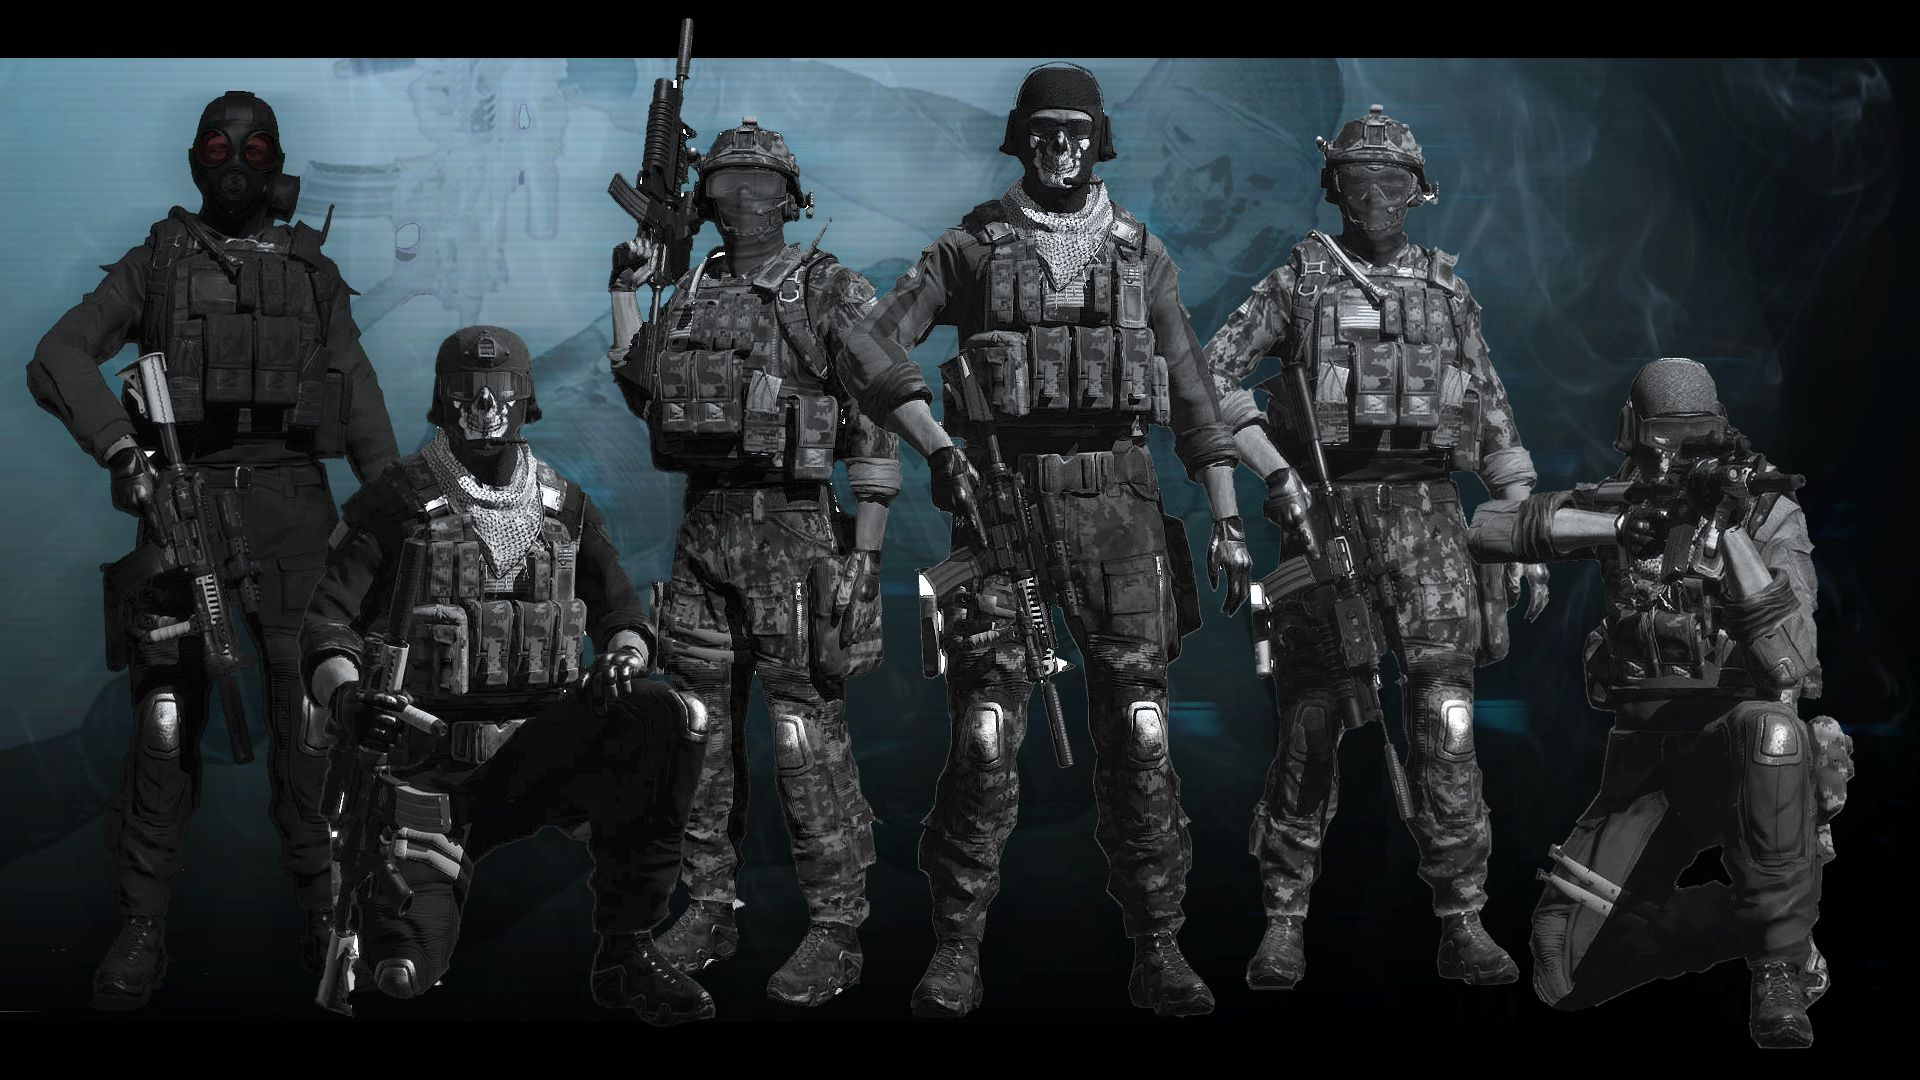 Cod ghost team 19201080 loadouts pinterest cod cod ghost team 19201080 sciox Image collections